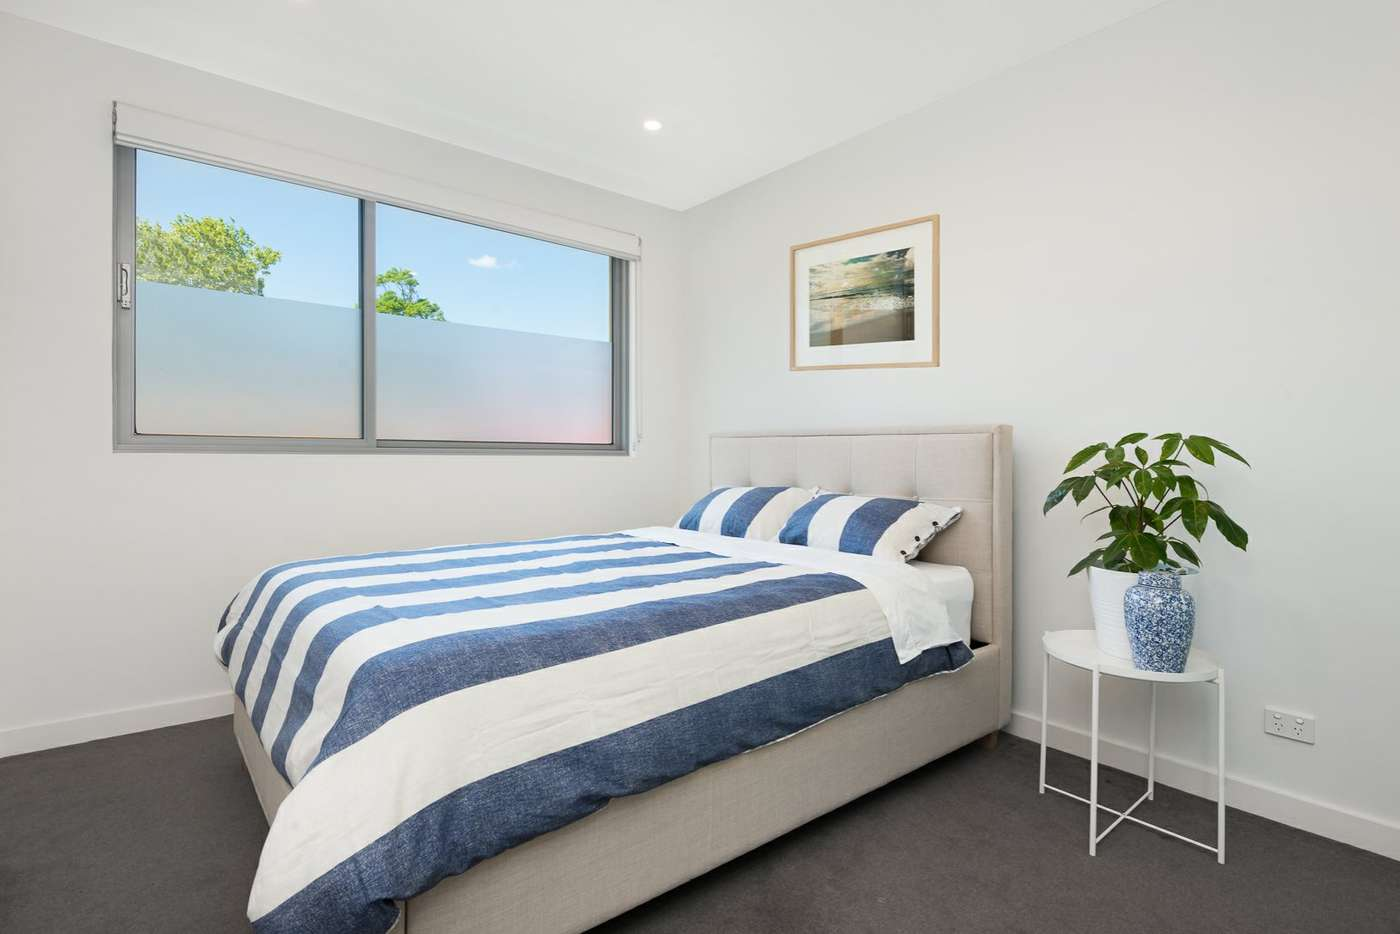 Sixth view of Homely unit listing, Apartment 2103/177 Mona Vale Road, St Ives NSW 2075